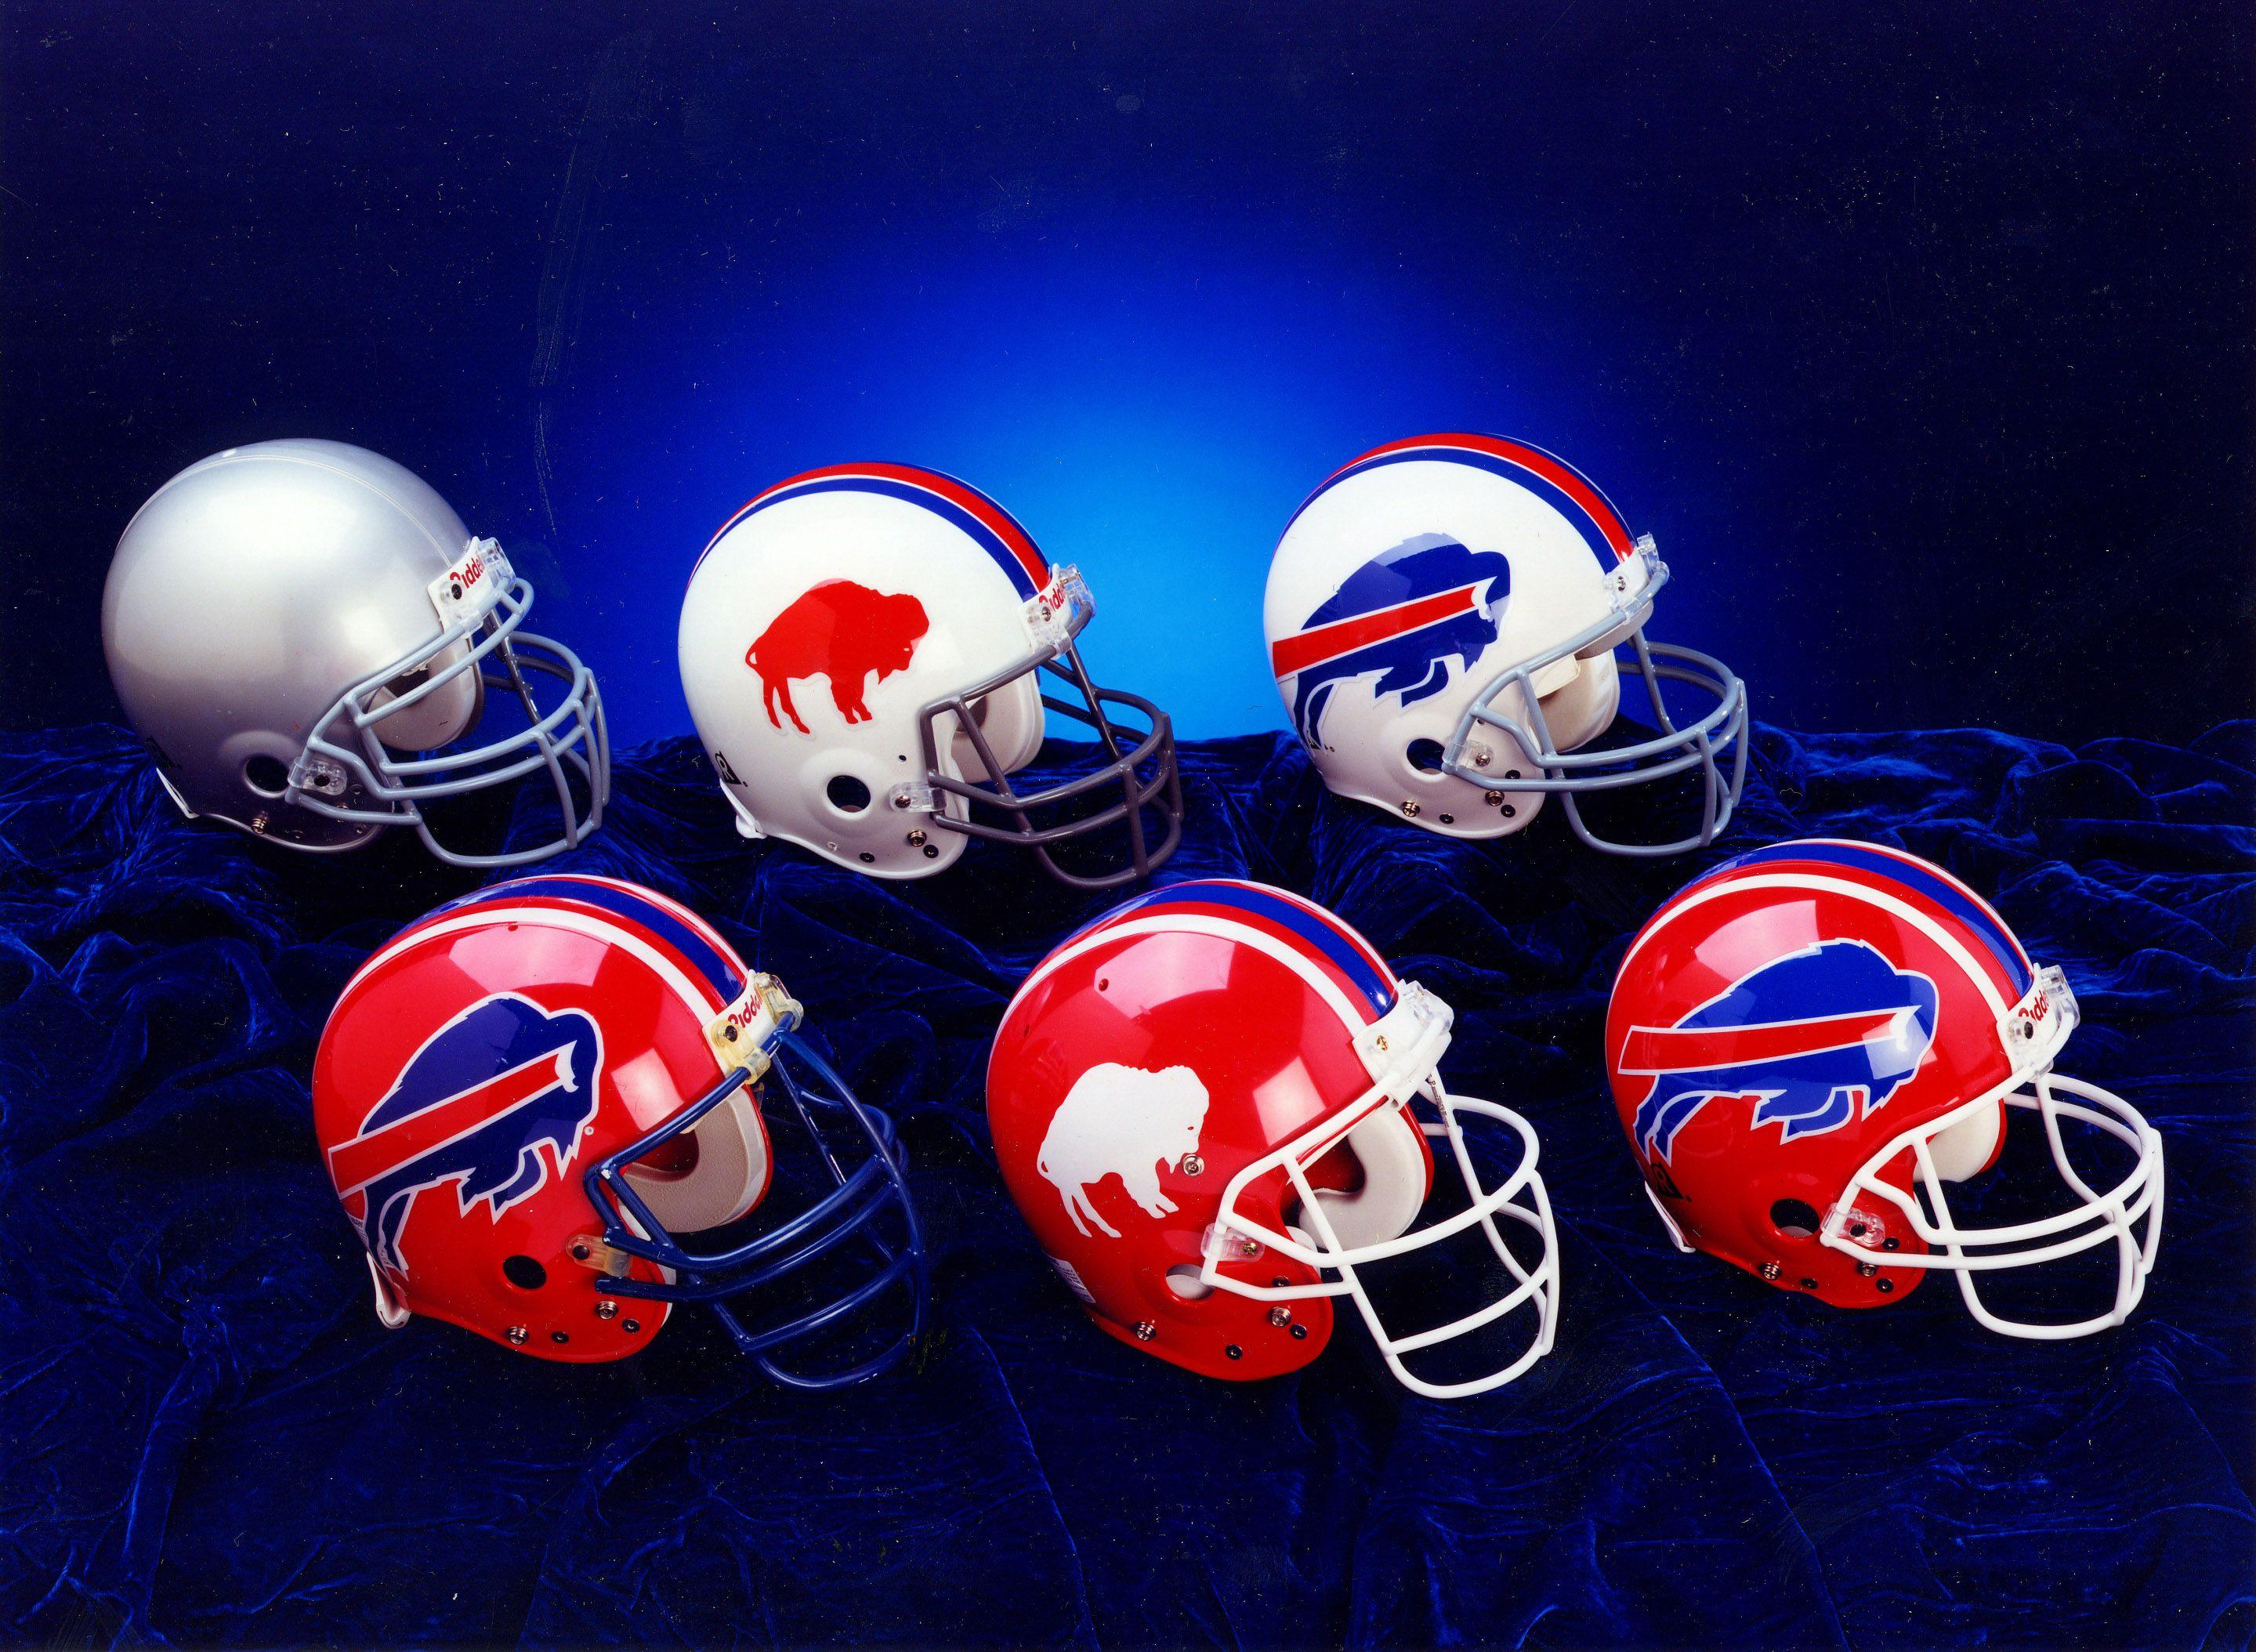 Buffalo Bills 2014 Wallpapers